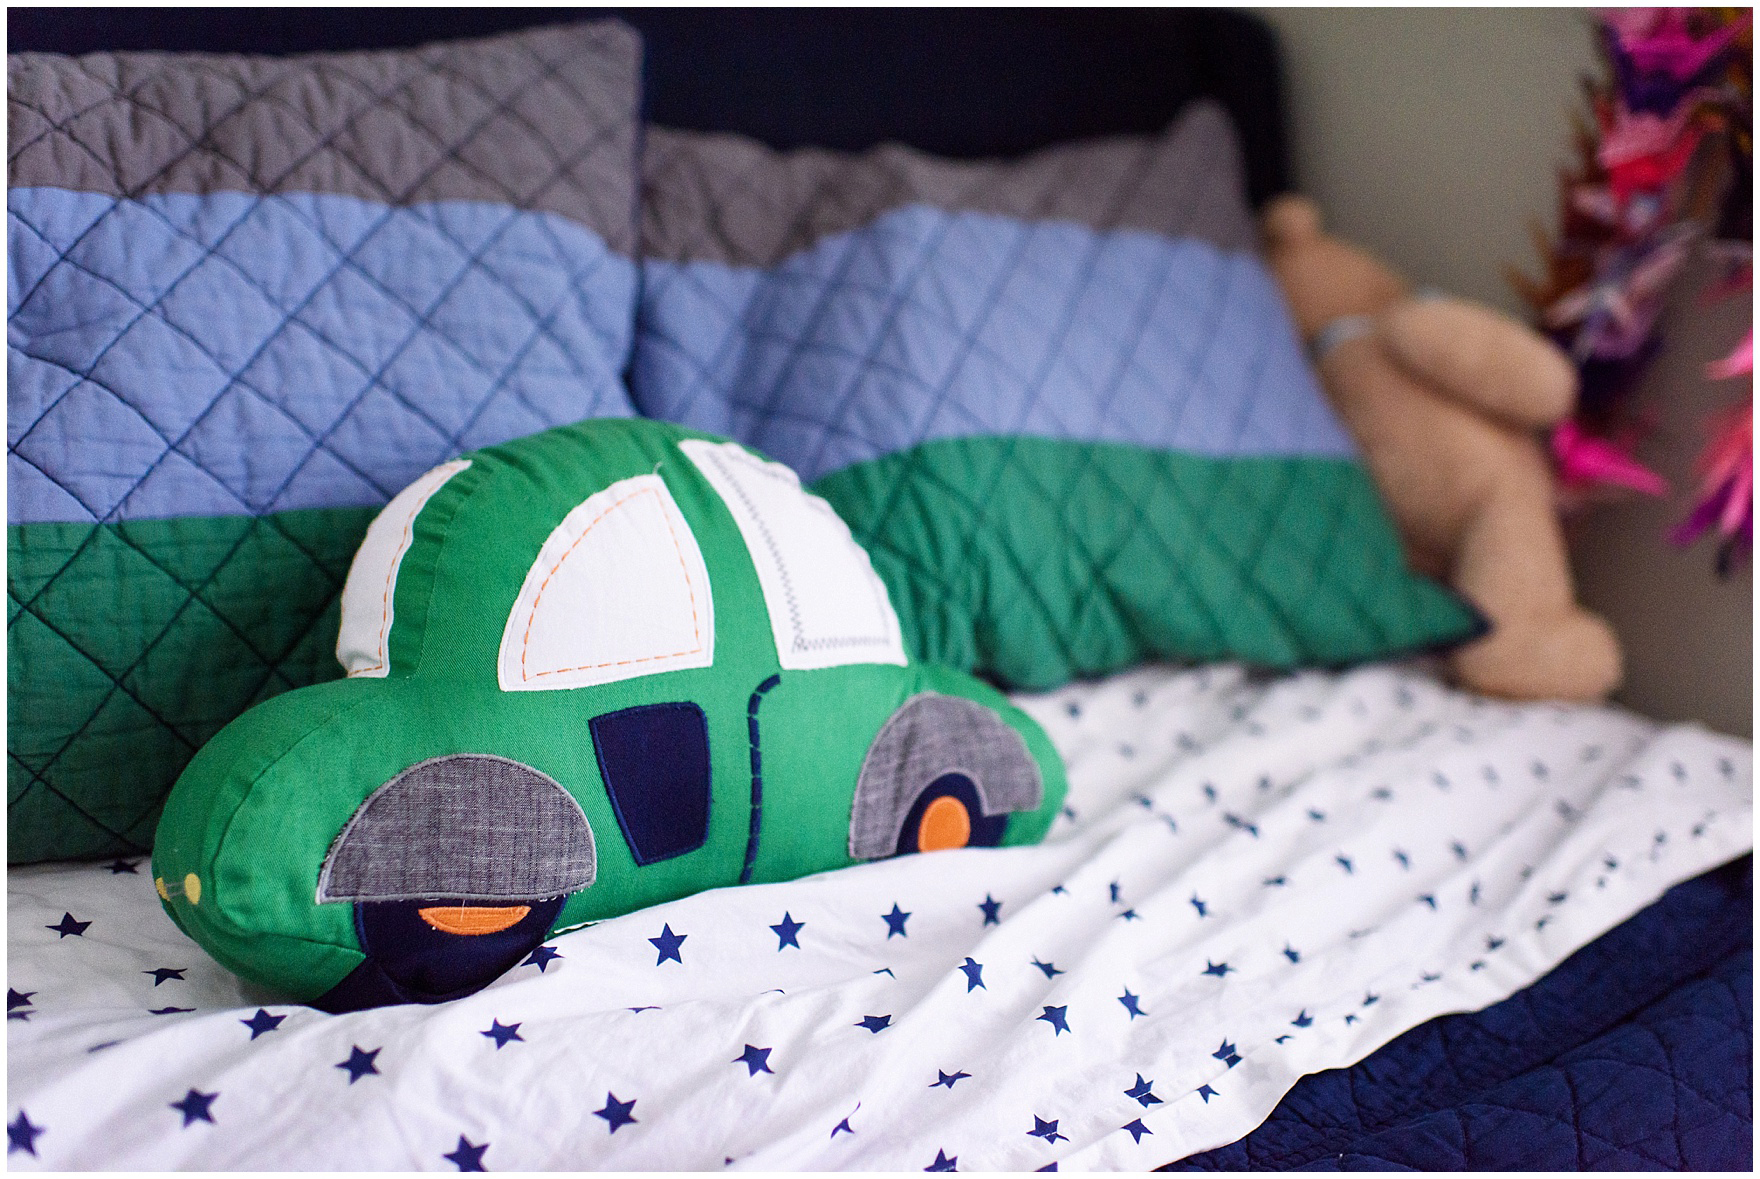 Cute detail of a car pillow and boys bedding during an at home family session.